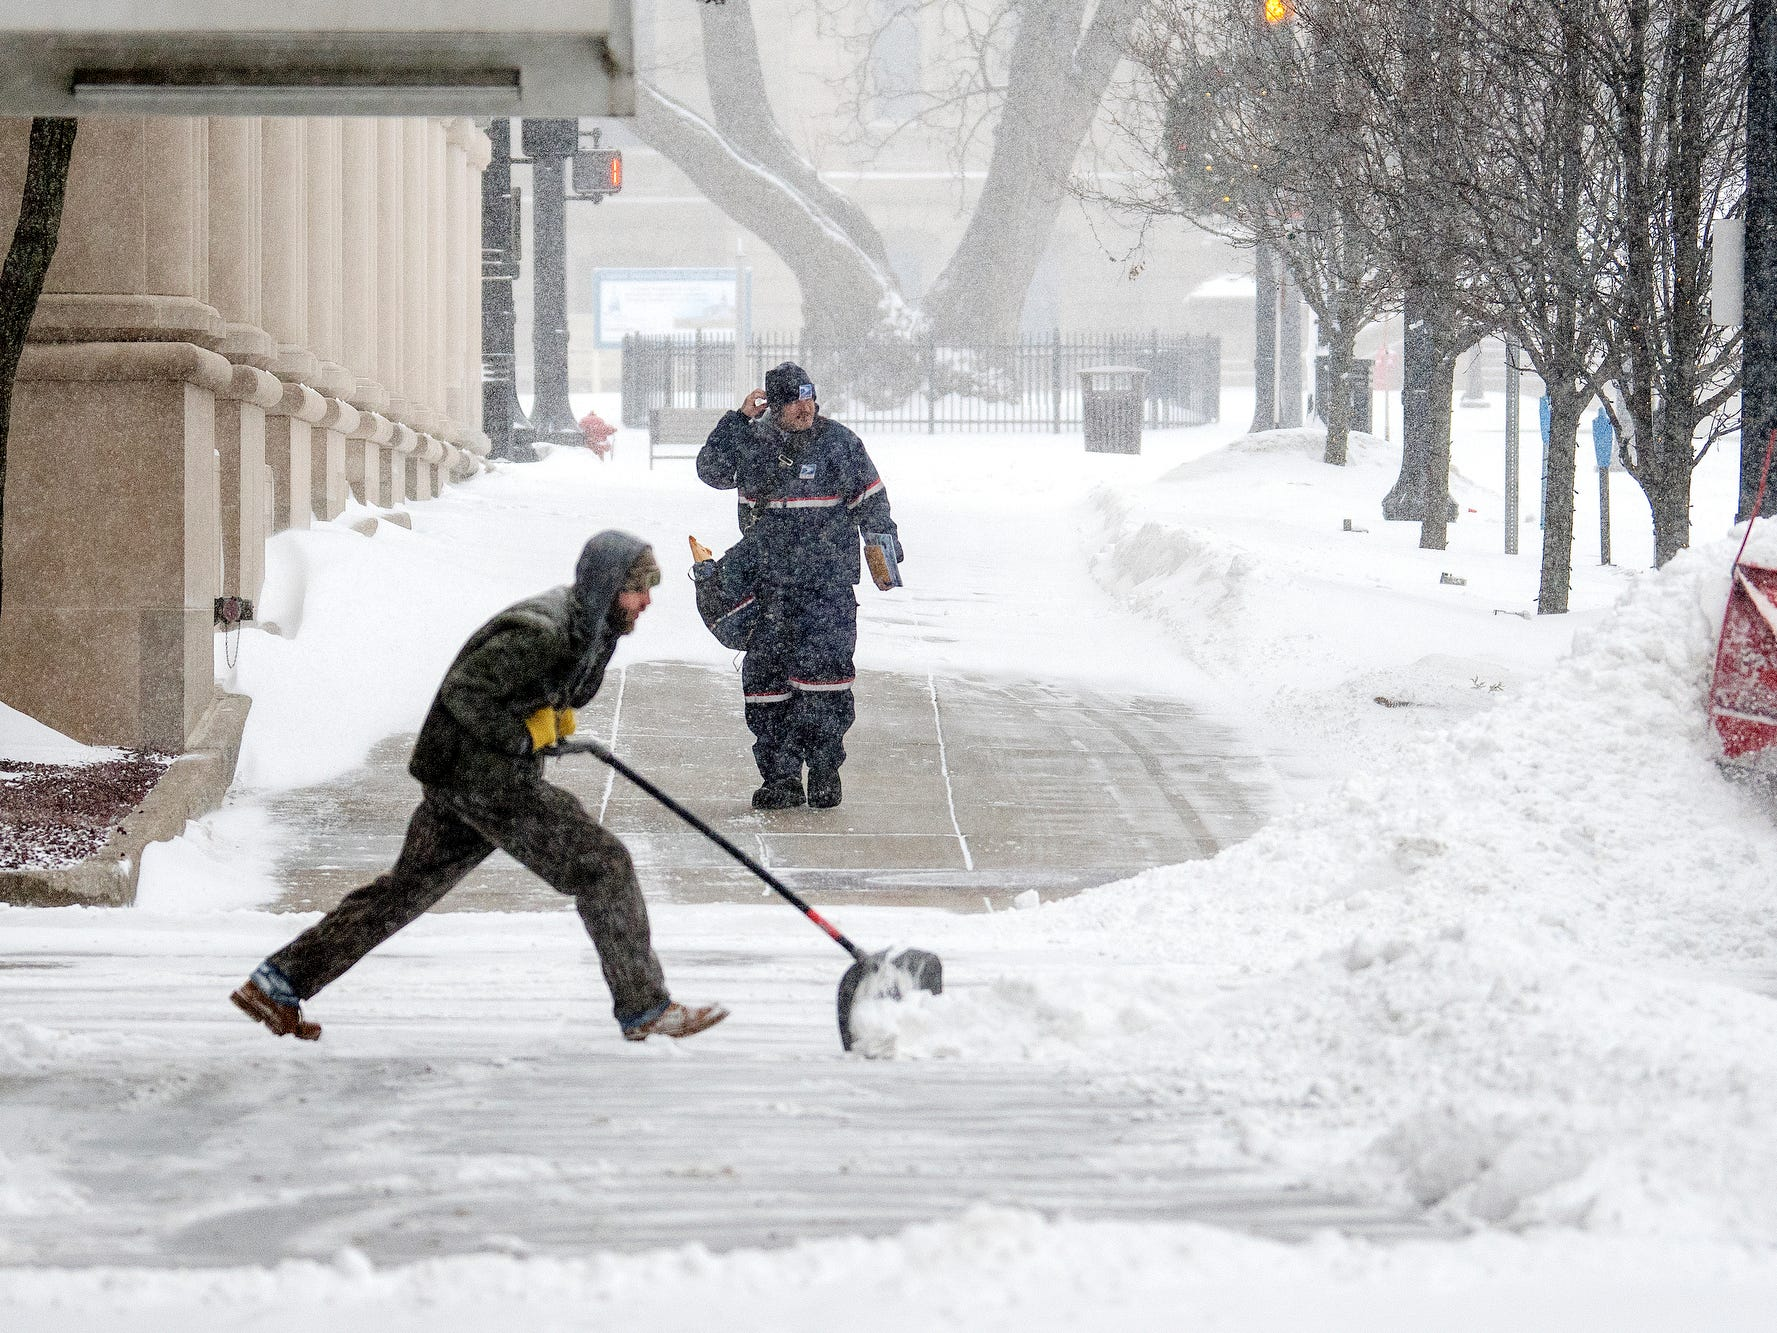 A postal worker, center, walks along Michigan Avenue near the Capitol Avenue on Monday, Jan. 28, 2019, in Lansing. A major snow storm hit the region Monday and will be followed by days of bitter, life-threatening cold. The postal service suspended delivery of mail on Wednesday due to cold temperatures.